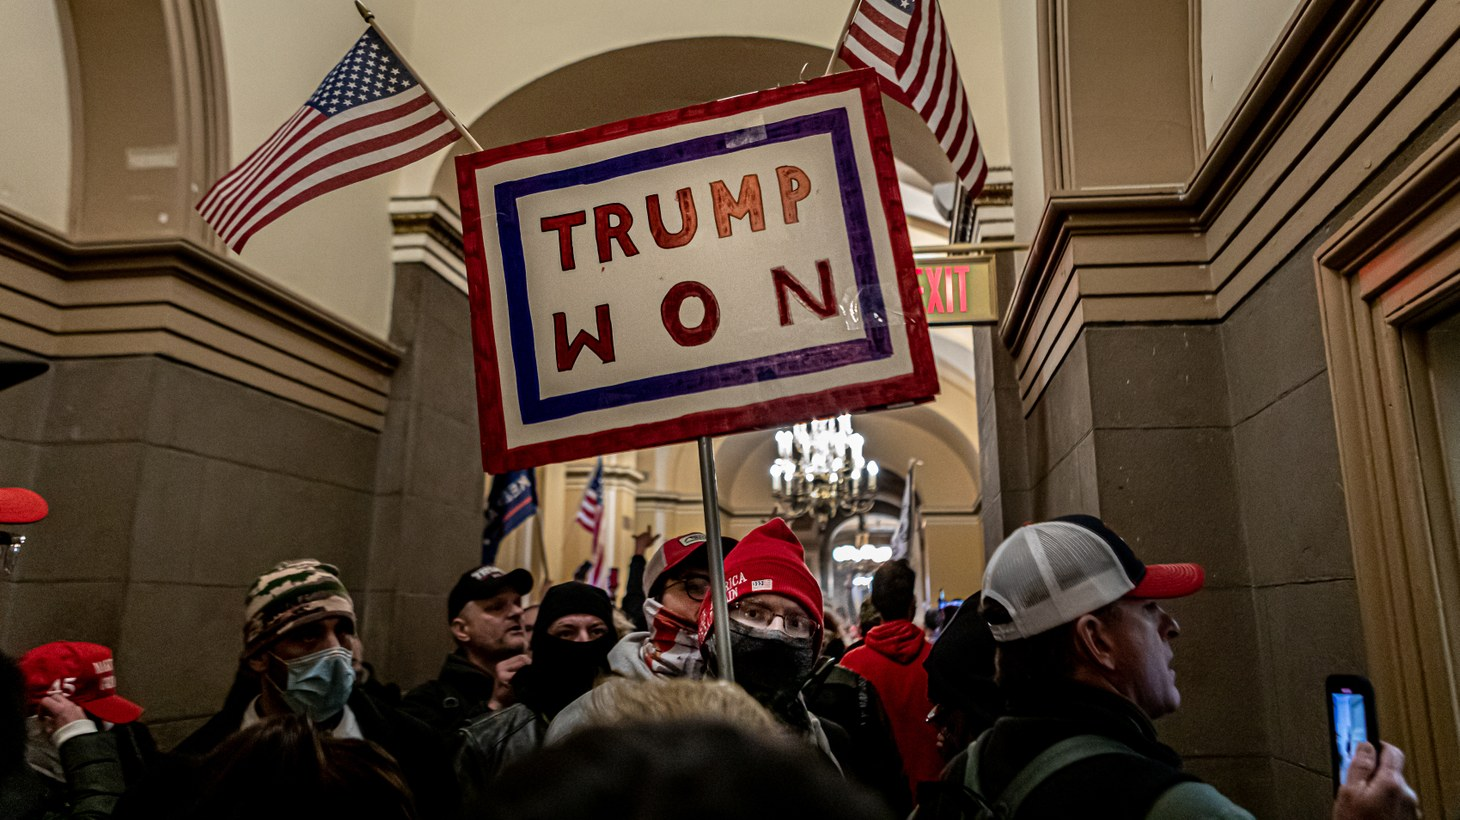 On January 6, 2021, Pro-Trump supporters and far-right forces flooded Washington DC to protest Donald Trump's election loss. Hundreds battled Capitol Police and breached the U.S. Capitol Building.